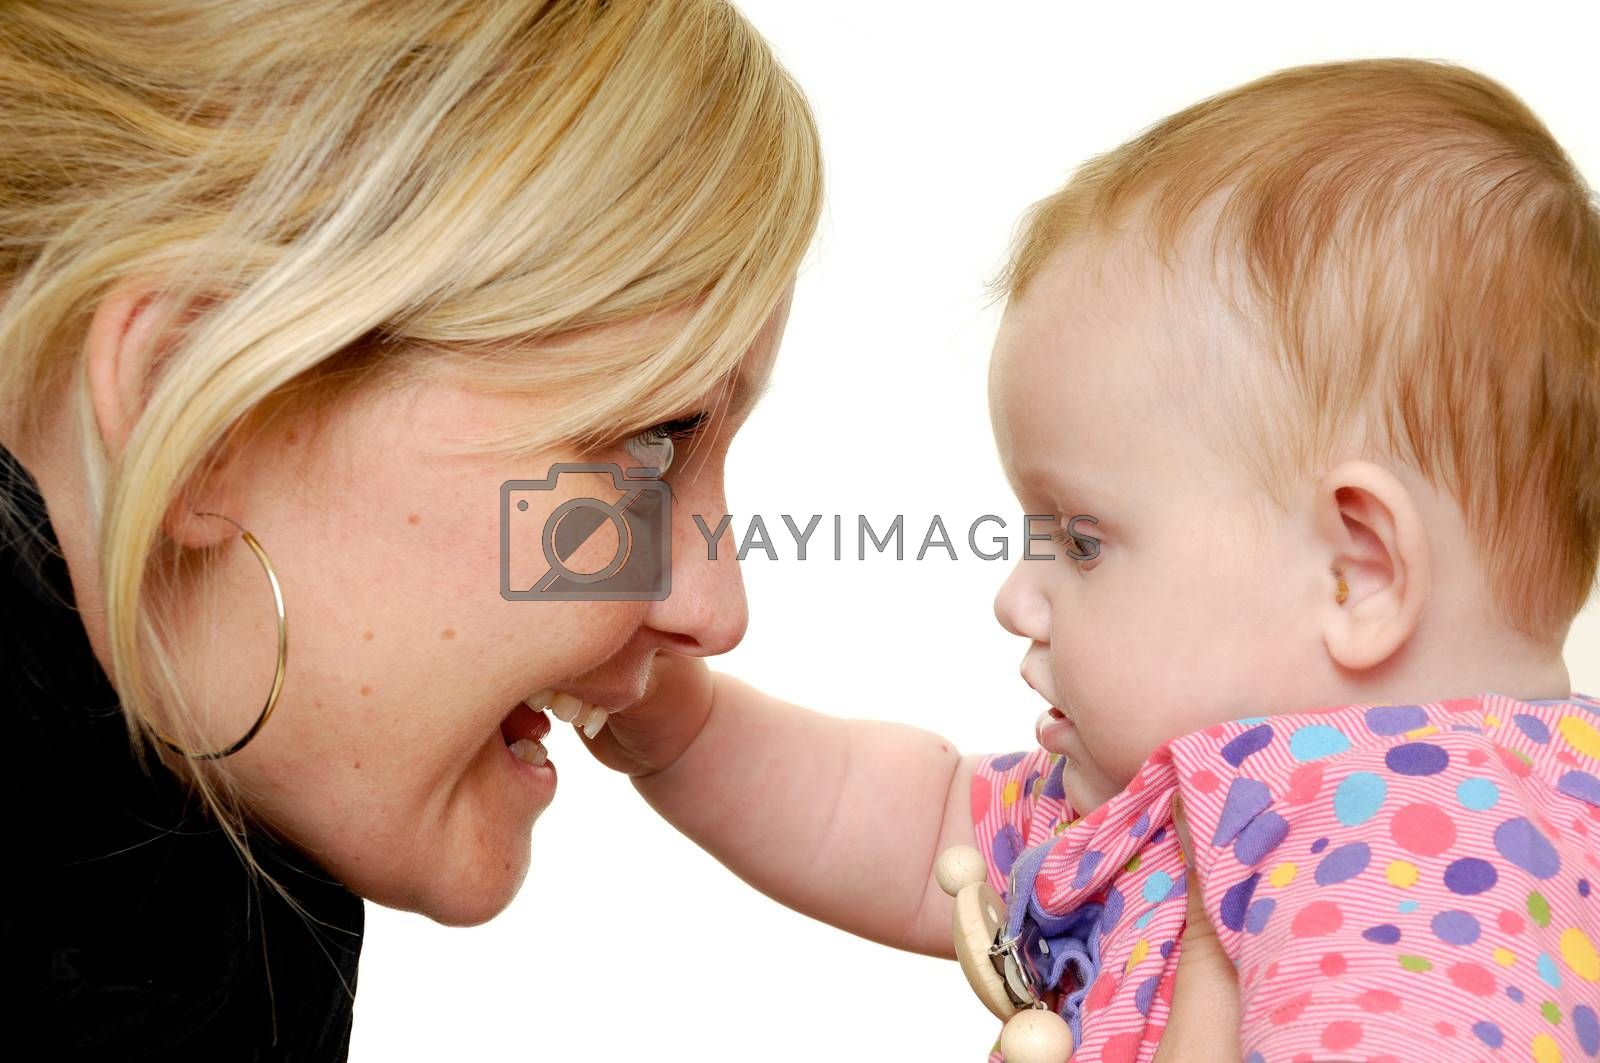 Mother is looking down on her sweet smiling baby. Taken on a white background.